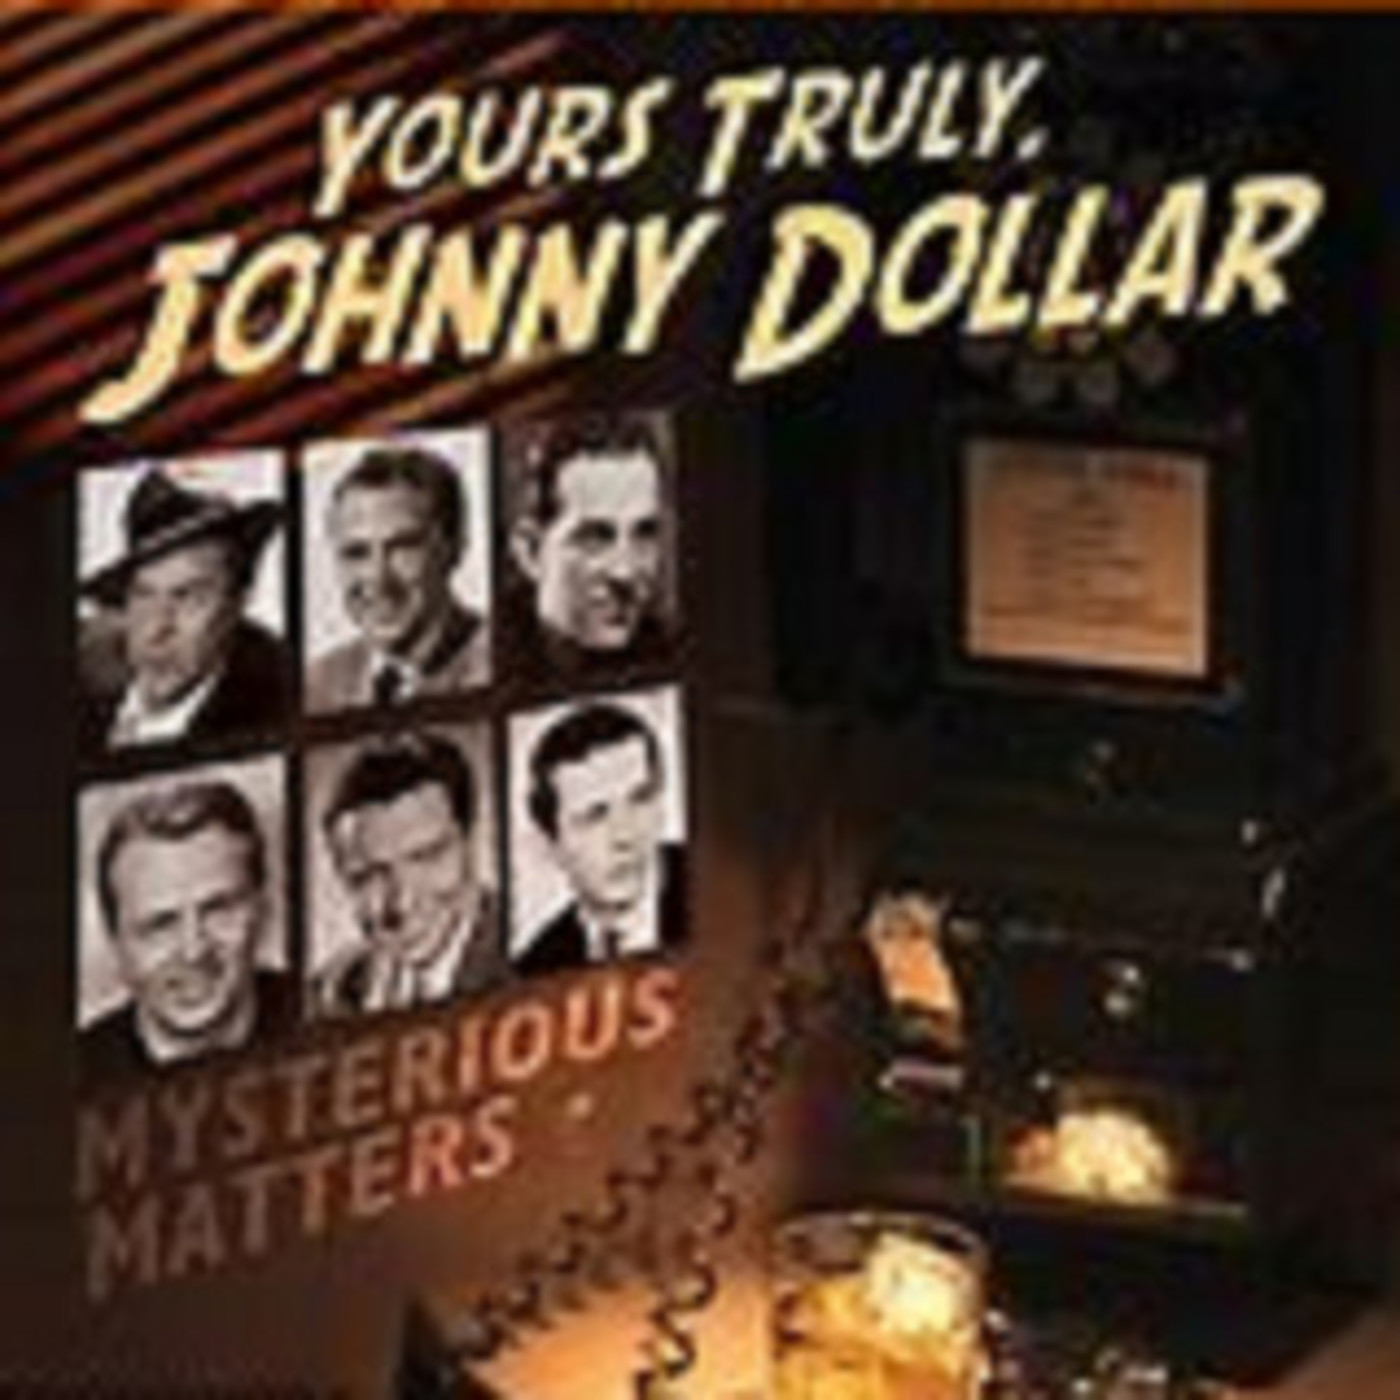 Yours Truly, Johnny Dollar - 082662, episode 806 - The Gold Rush Matter